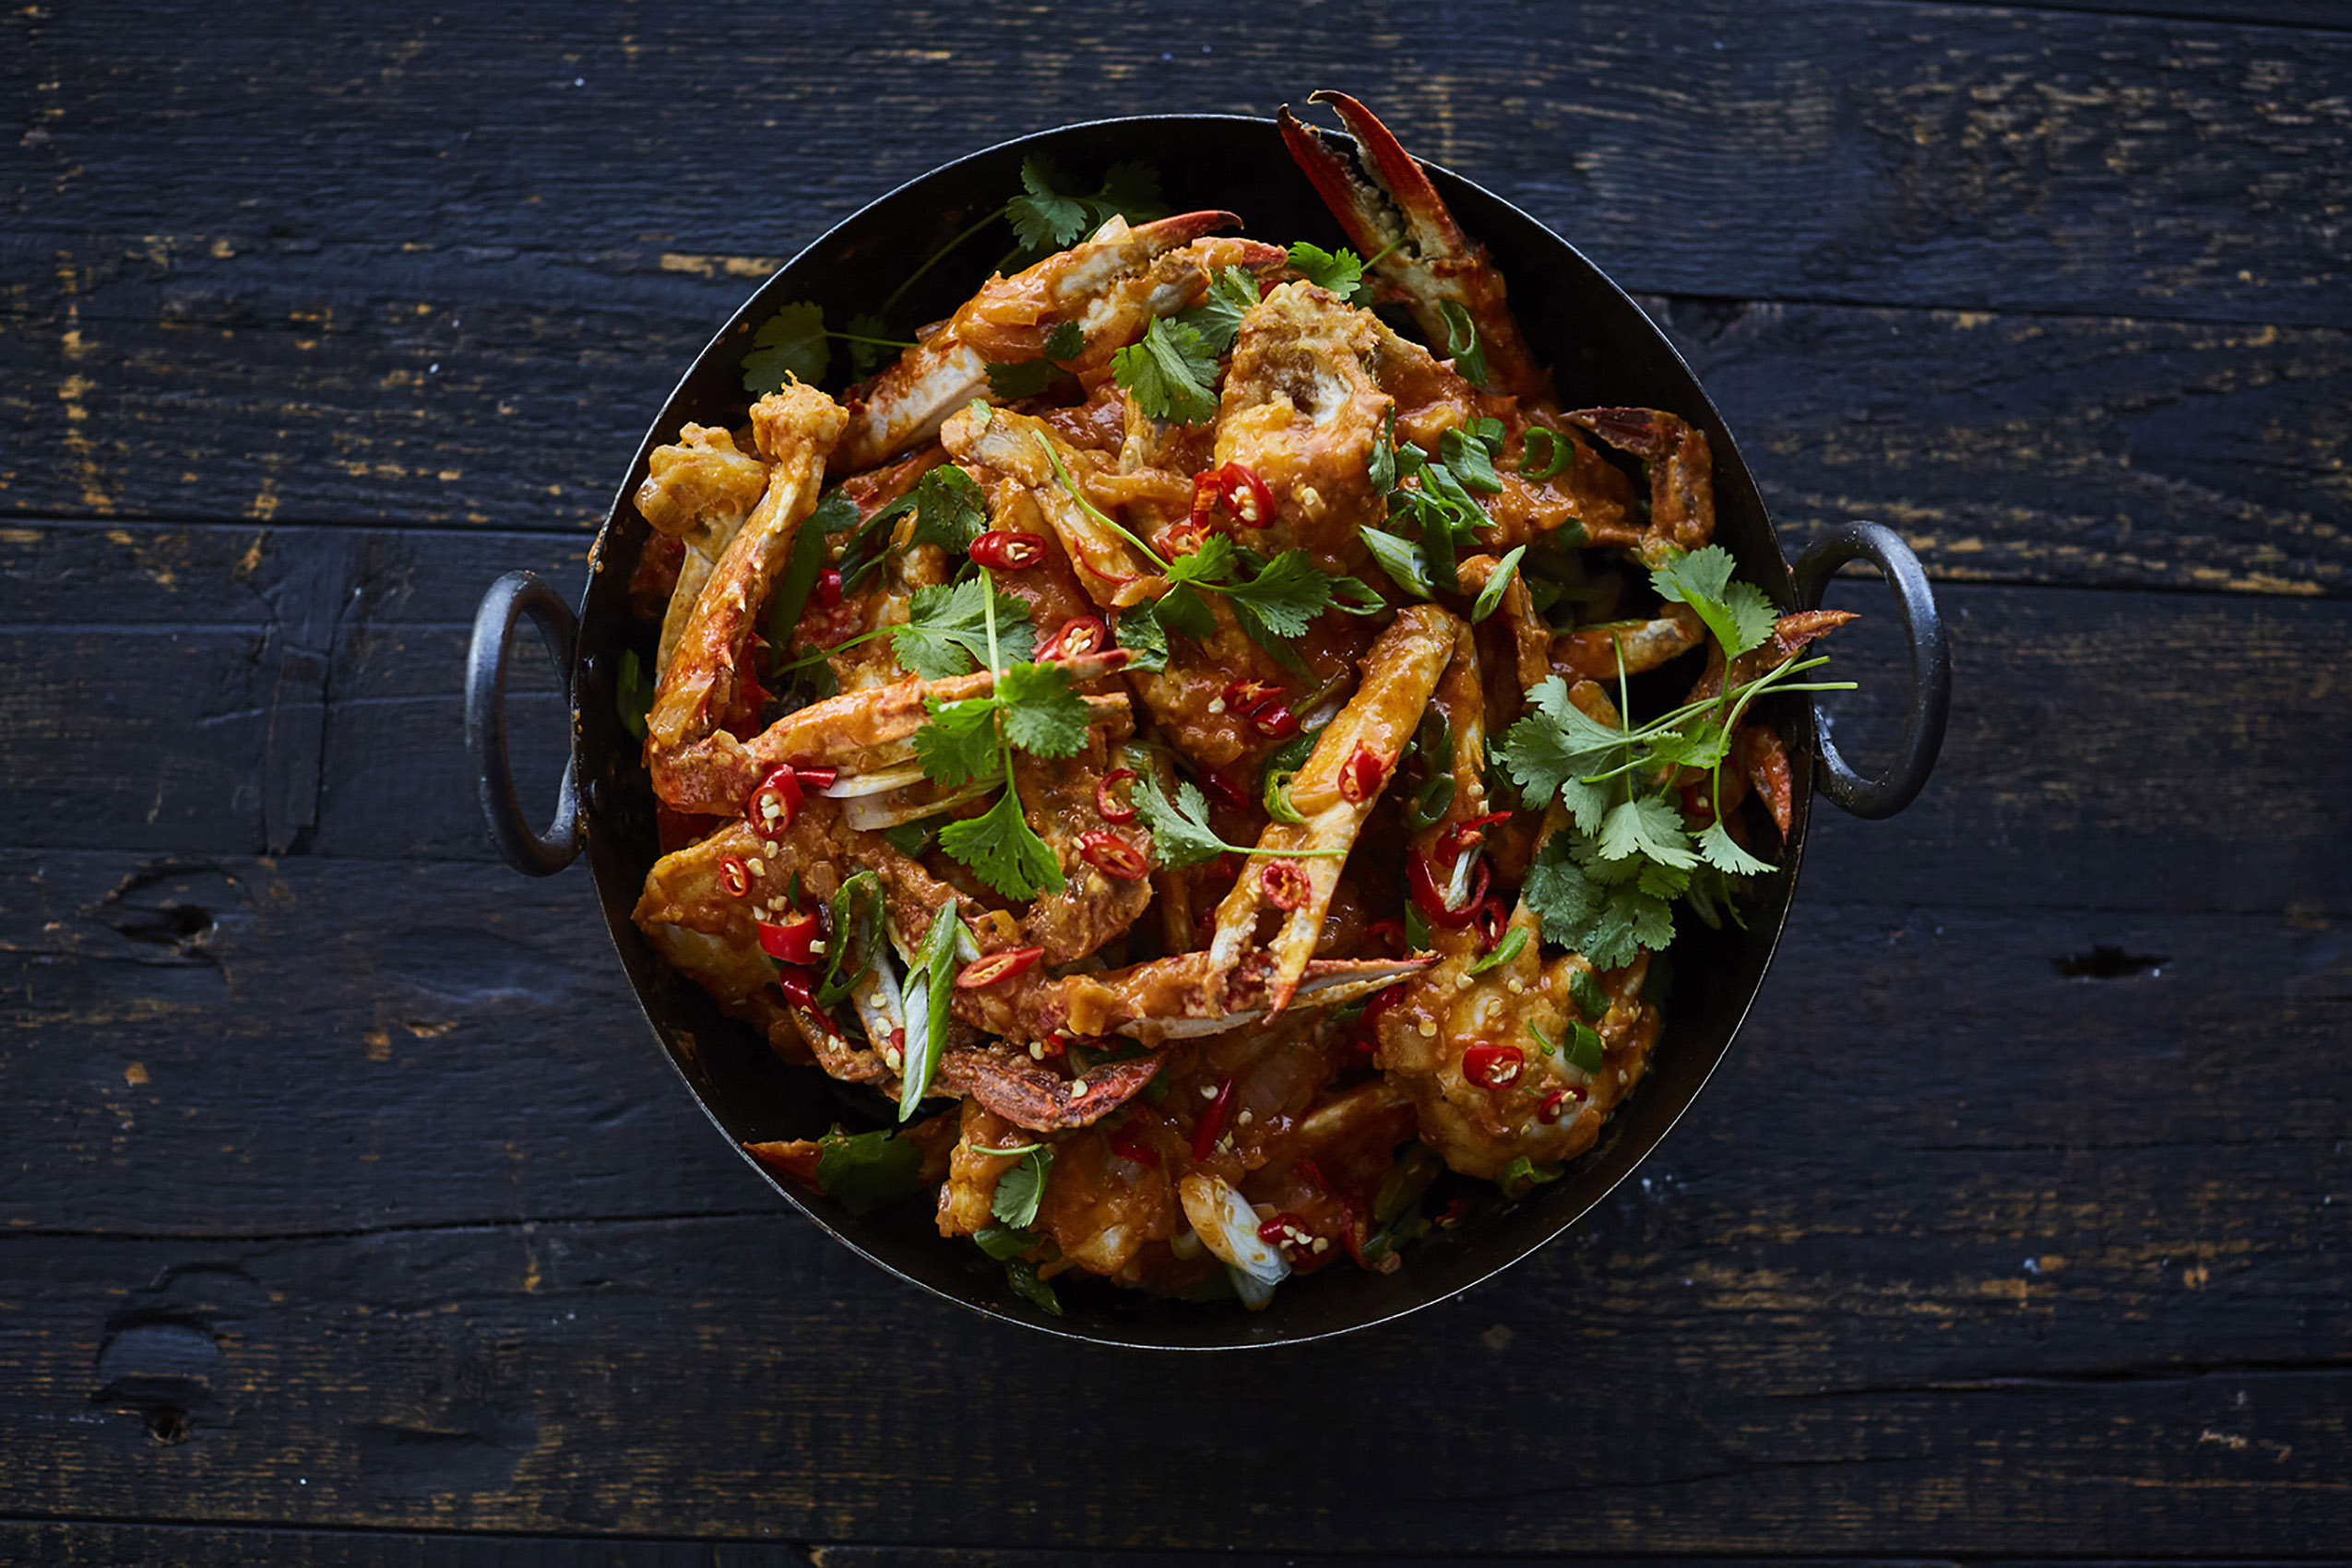 SteveRyan_Photographer_Food_ChilliShrimp_134